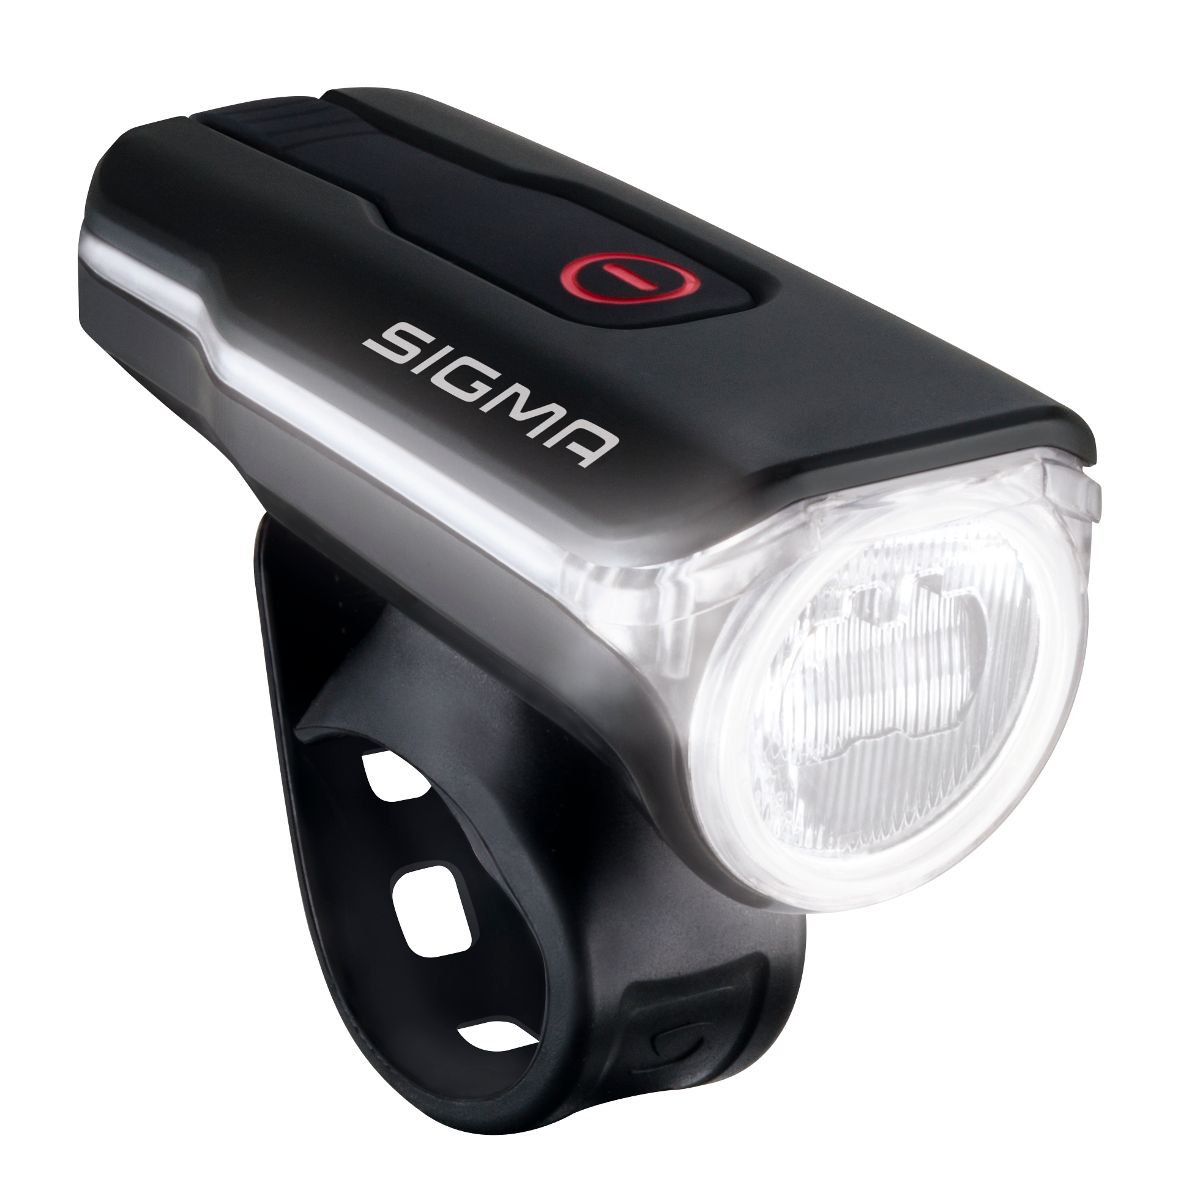 Aura 60 USB battery-powered front light